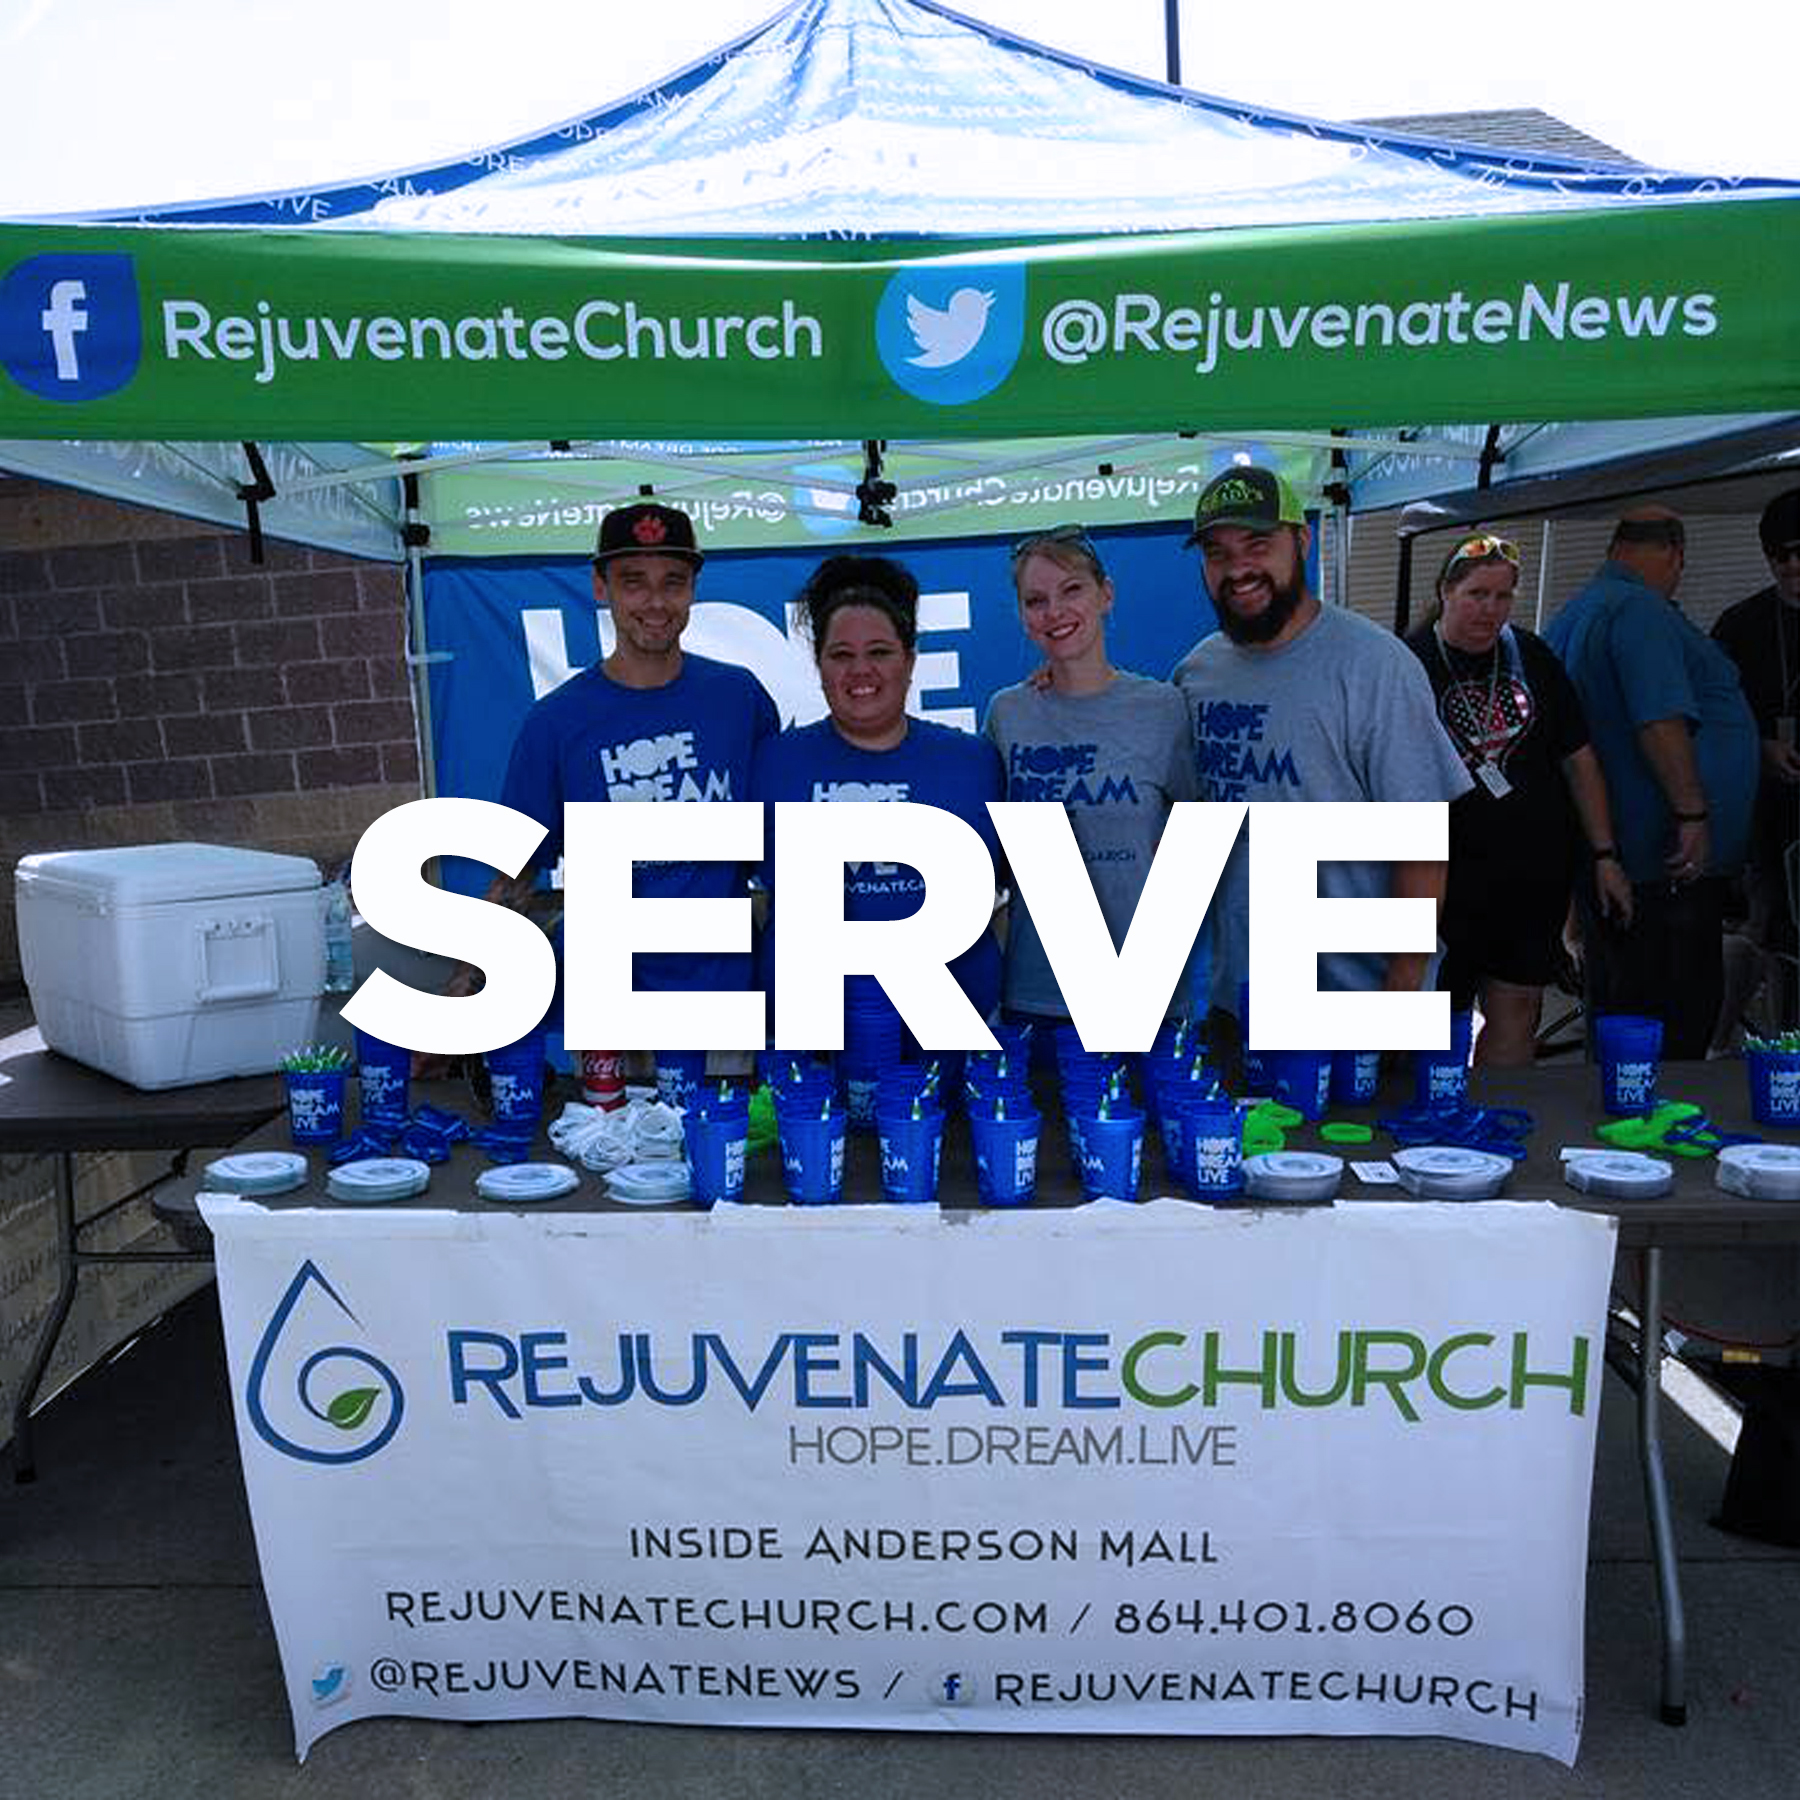 serve-rejuvenate-church